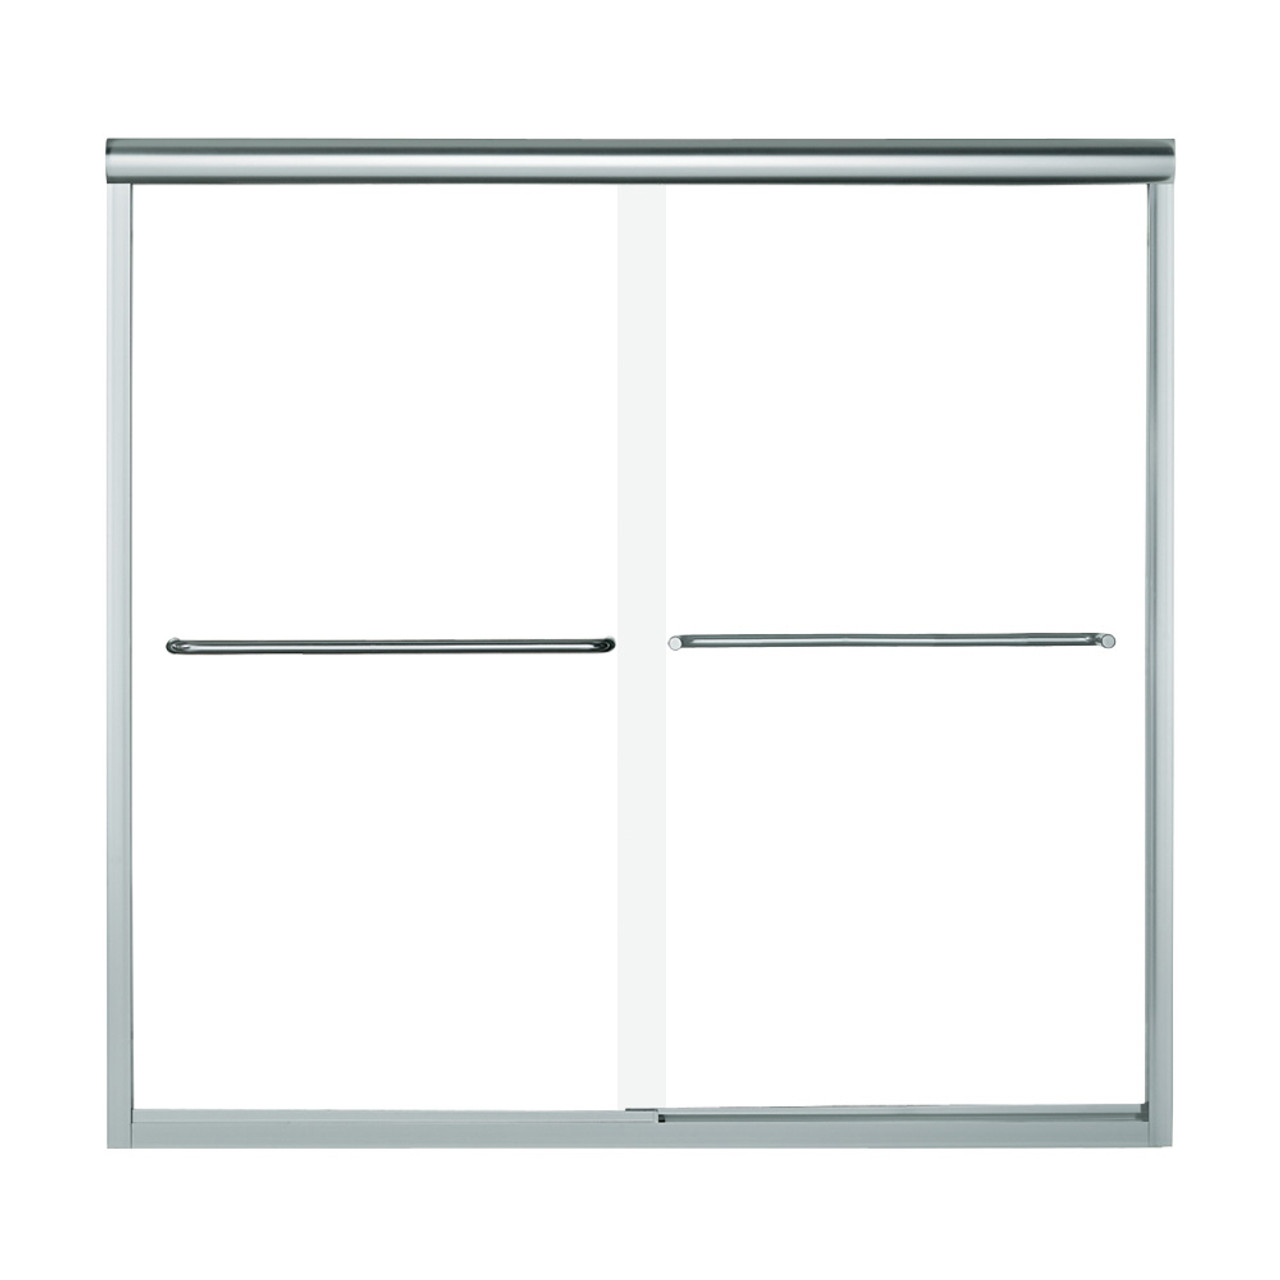 Sterling 5405 59s G05 Finesse 59 625 In X 58 31 In Frameless Alcove Shower Door With Smooth Clear Glass Texture Glass